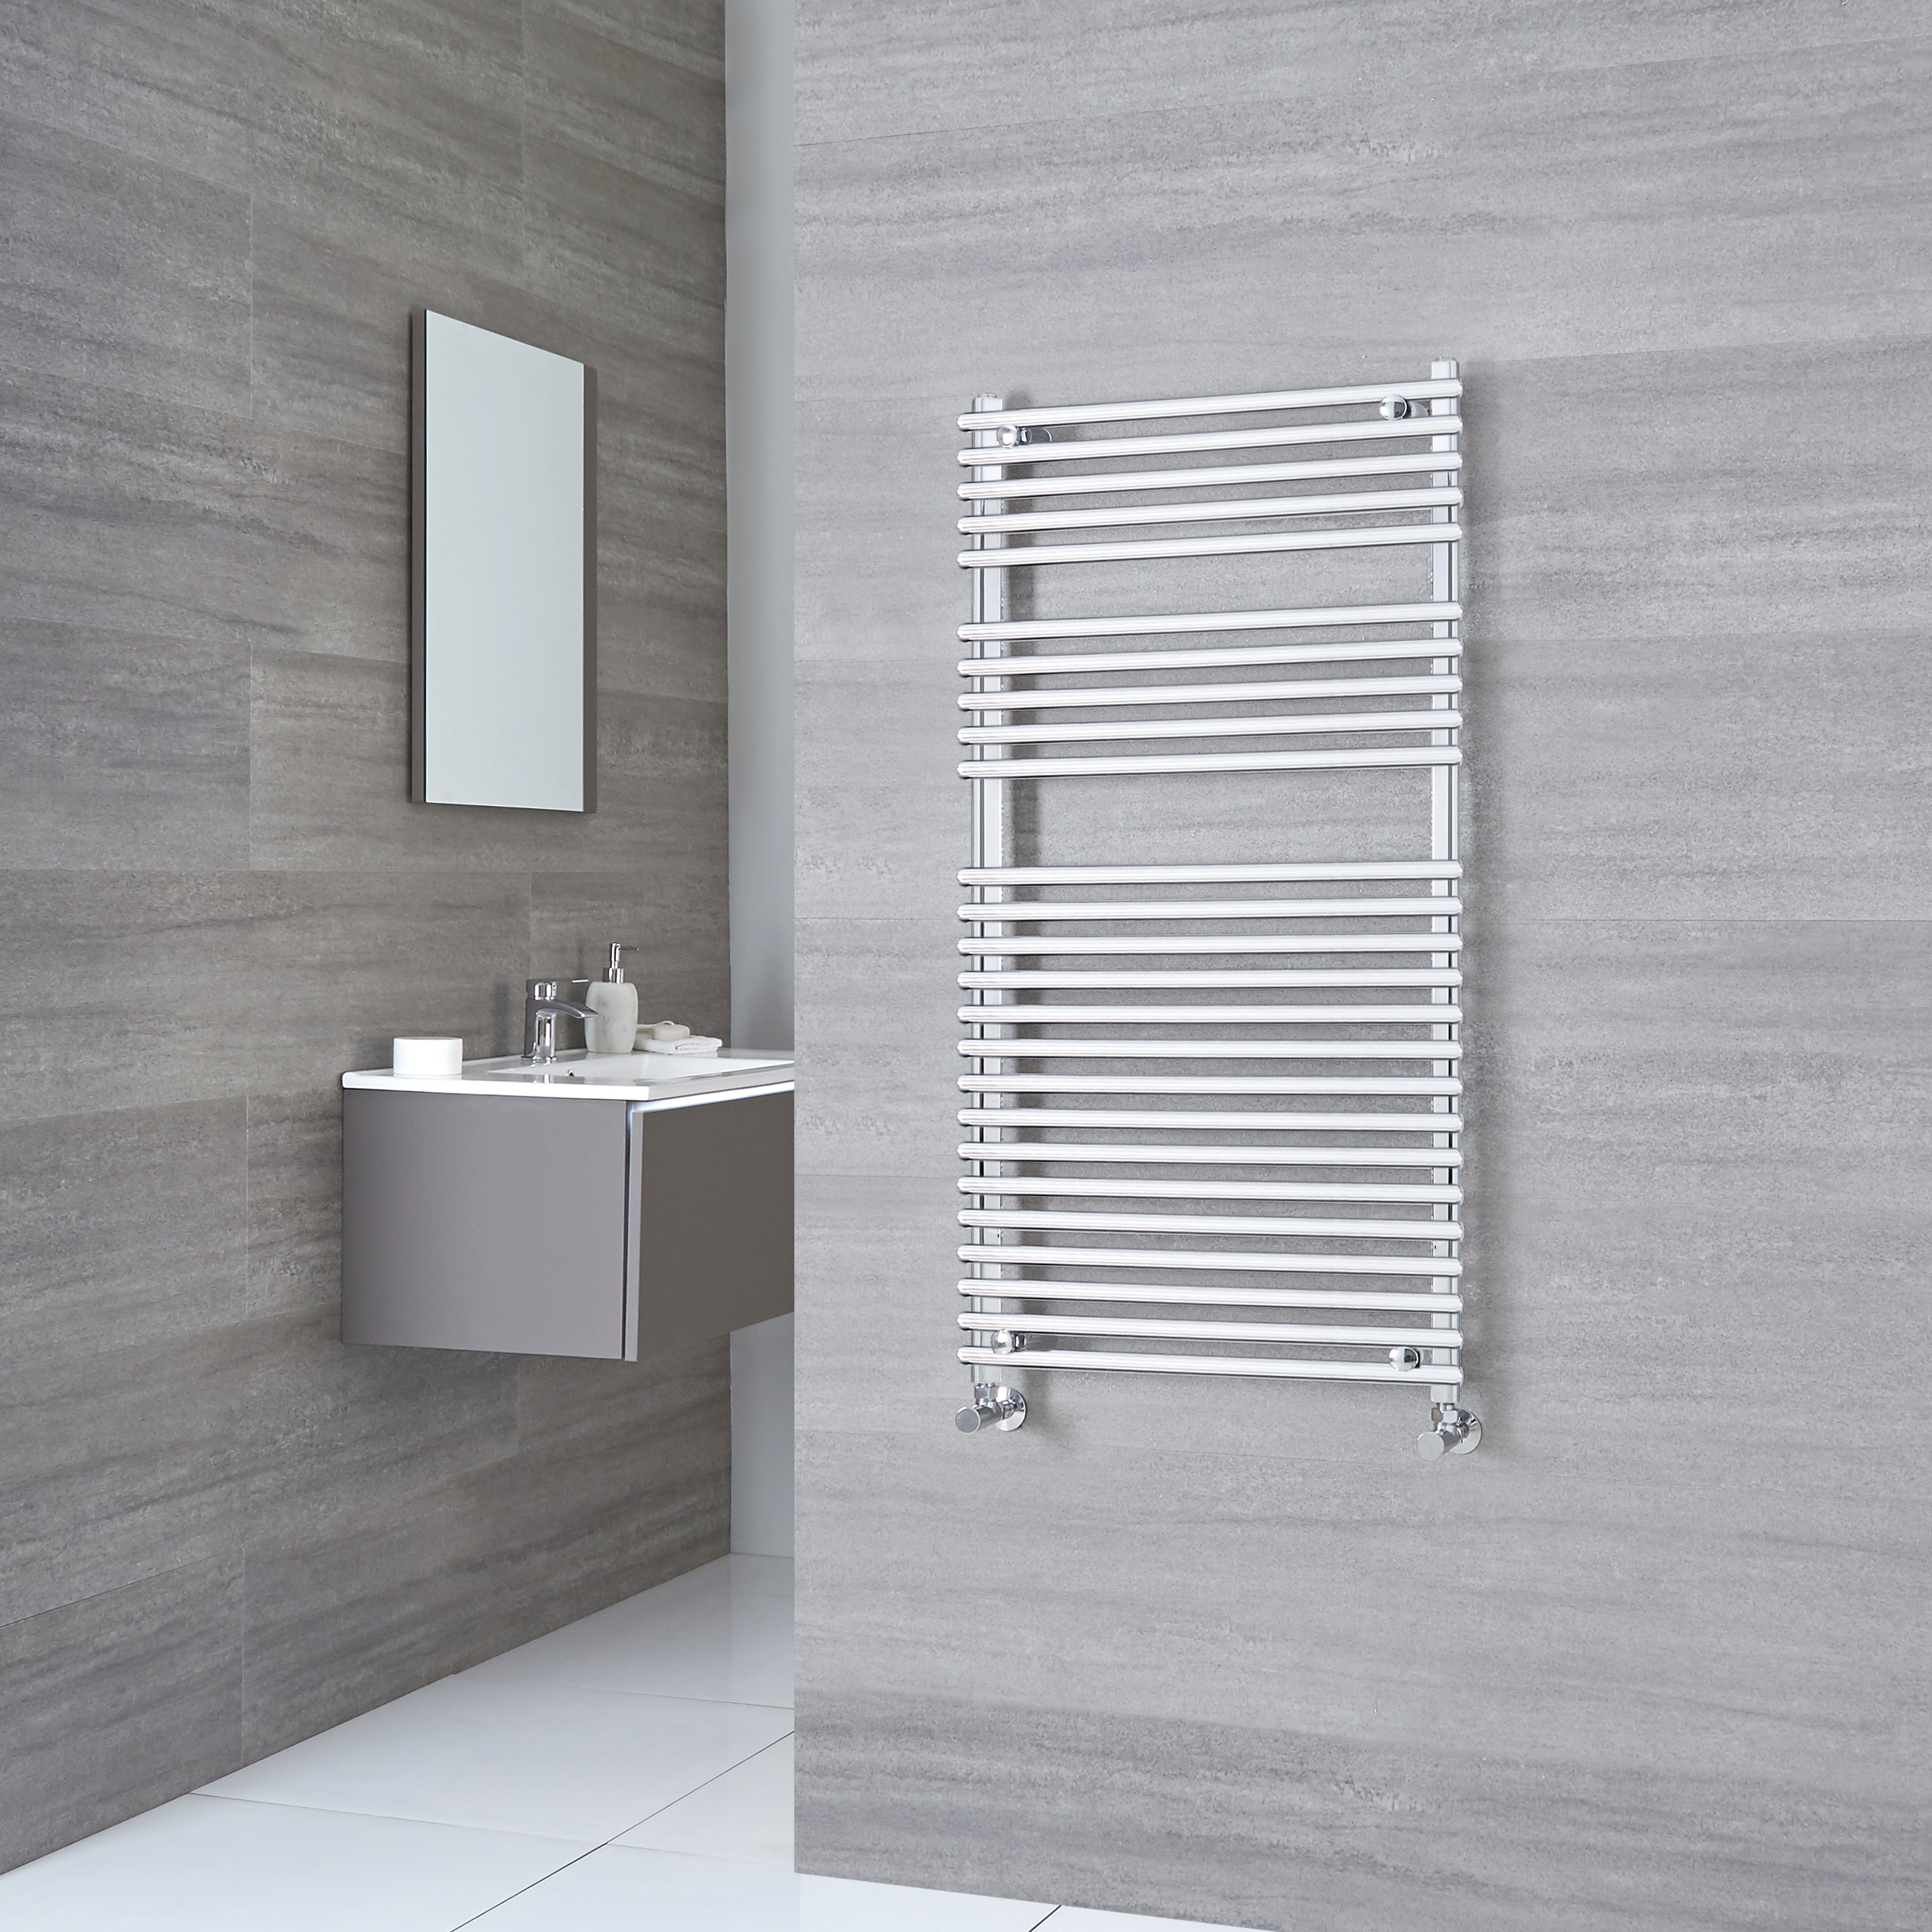 Kudox Harrogate - Chrome Flat Bar on Bar Heated Towel Rail - 1150mm x 600mm